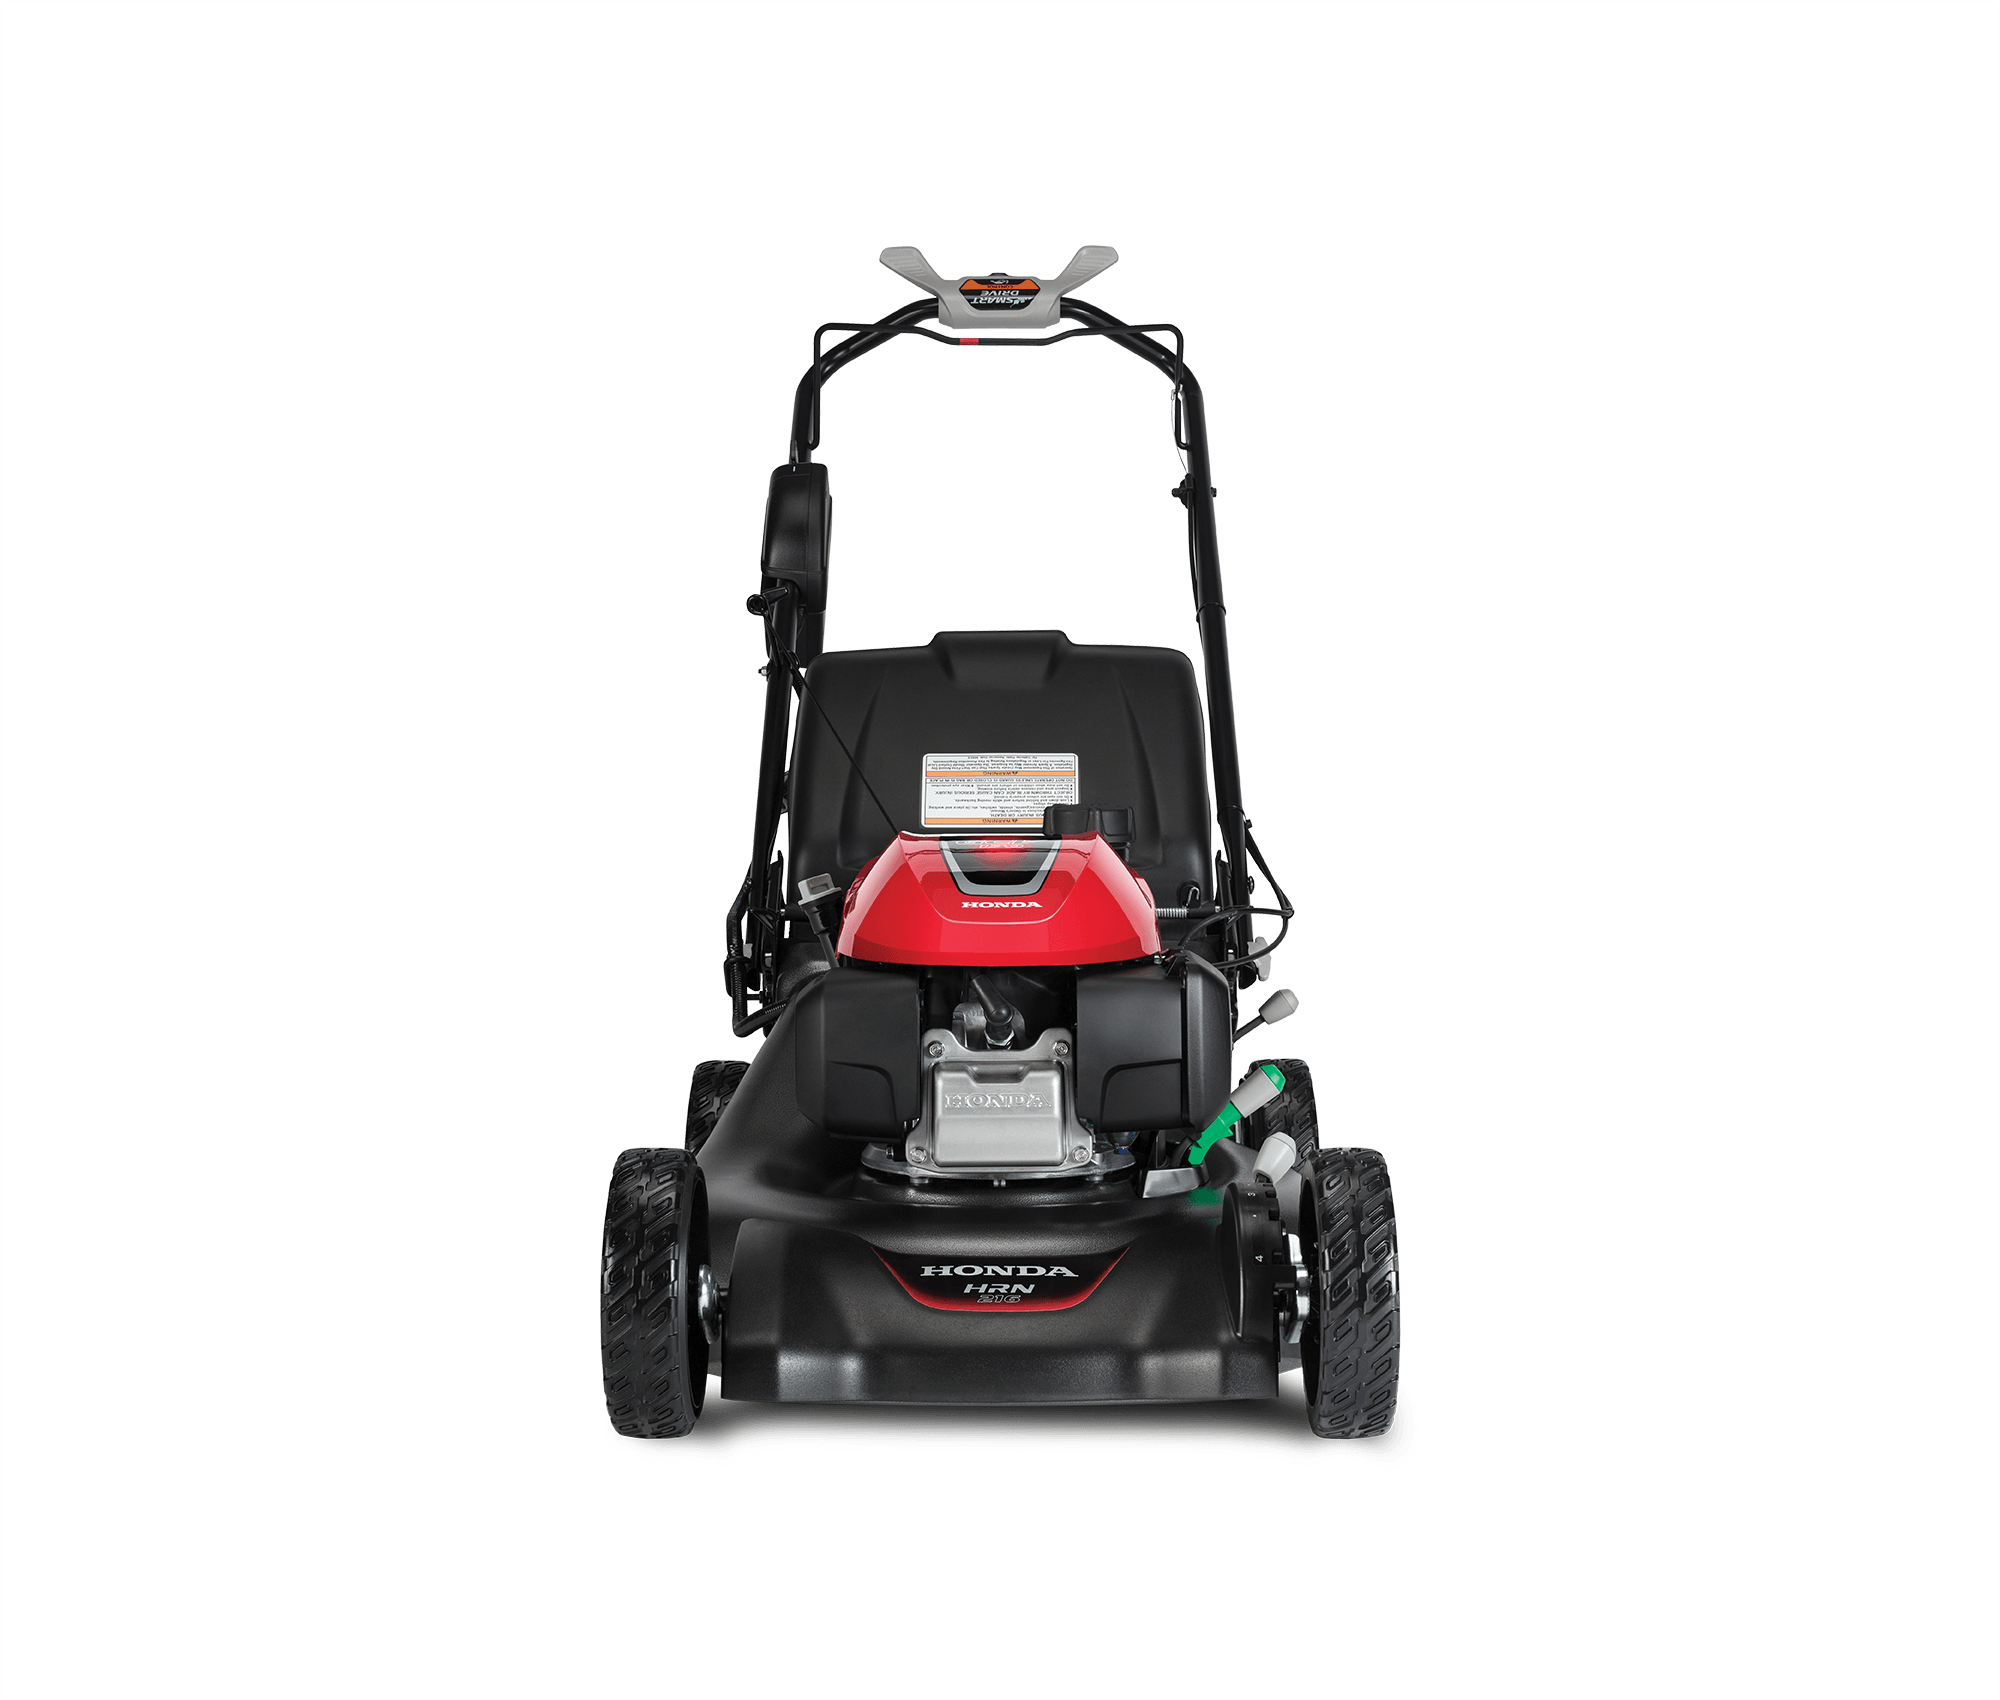 Image of the HRN Smart-Drive Electric Start Lawn Mower